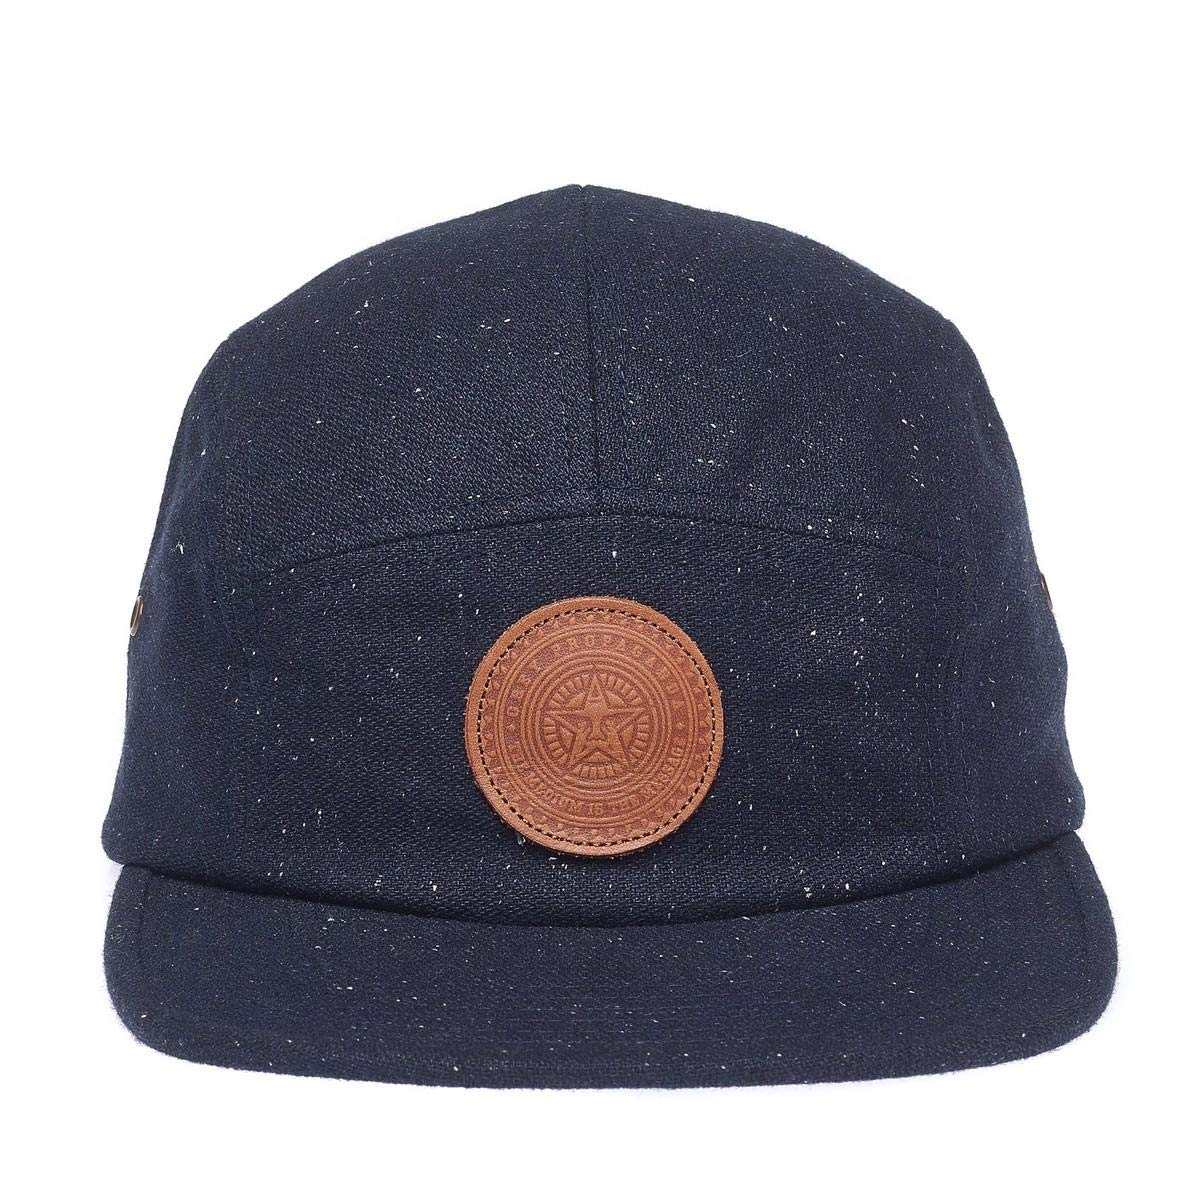 Obey Concord 5 Panel Adjustable Hat Navy by Obey